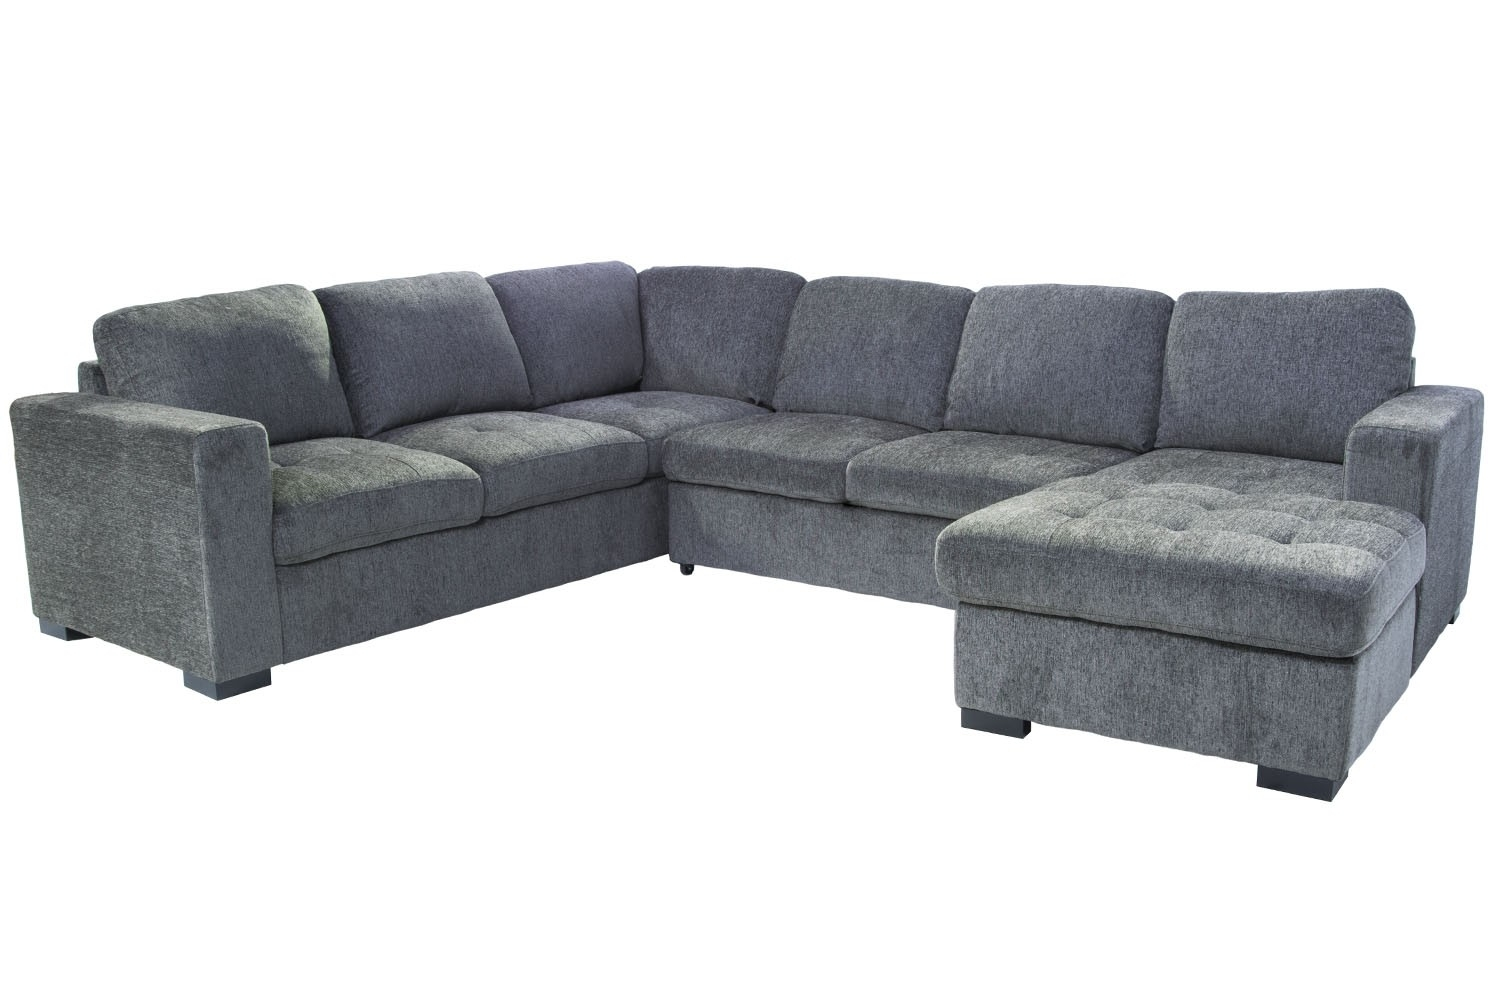 Sectional Sofas | Save Mor Online And In Store Throughout Marcus Chocolate 6 Piece Sectionals With Power Headrest And Usb (Image 21 of 25)